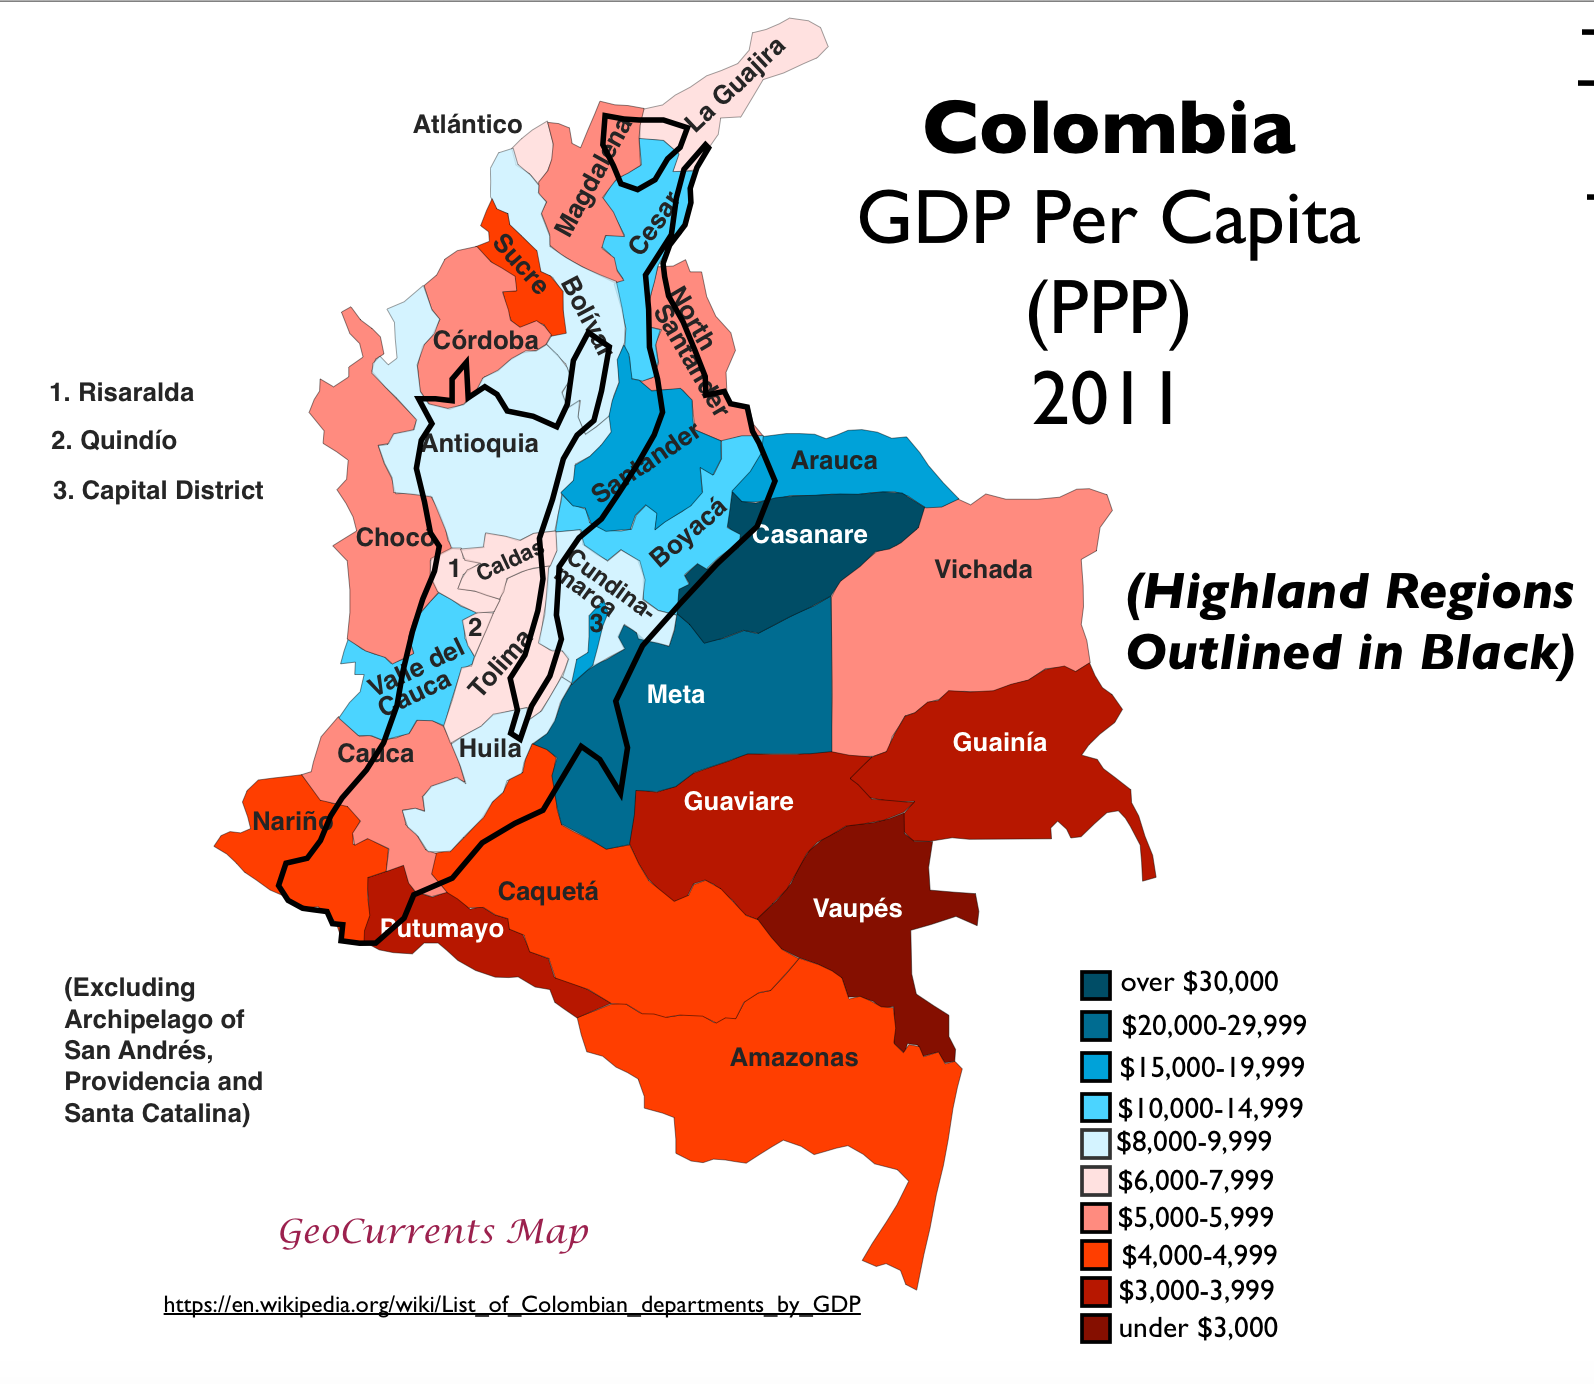 mapping the violence in colombia essay The mapping of colombian national territory, however, is fundamental to the problem of control of national territory as a threshold matter, policy, strategy, and military asset management in .